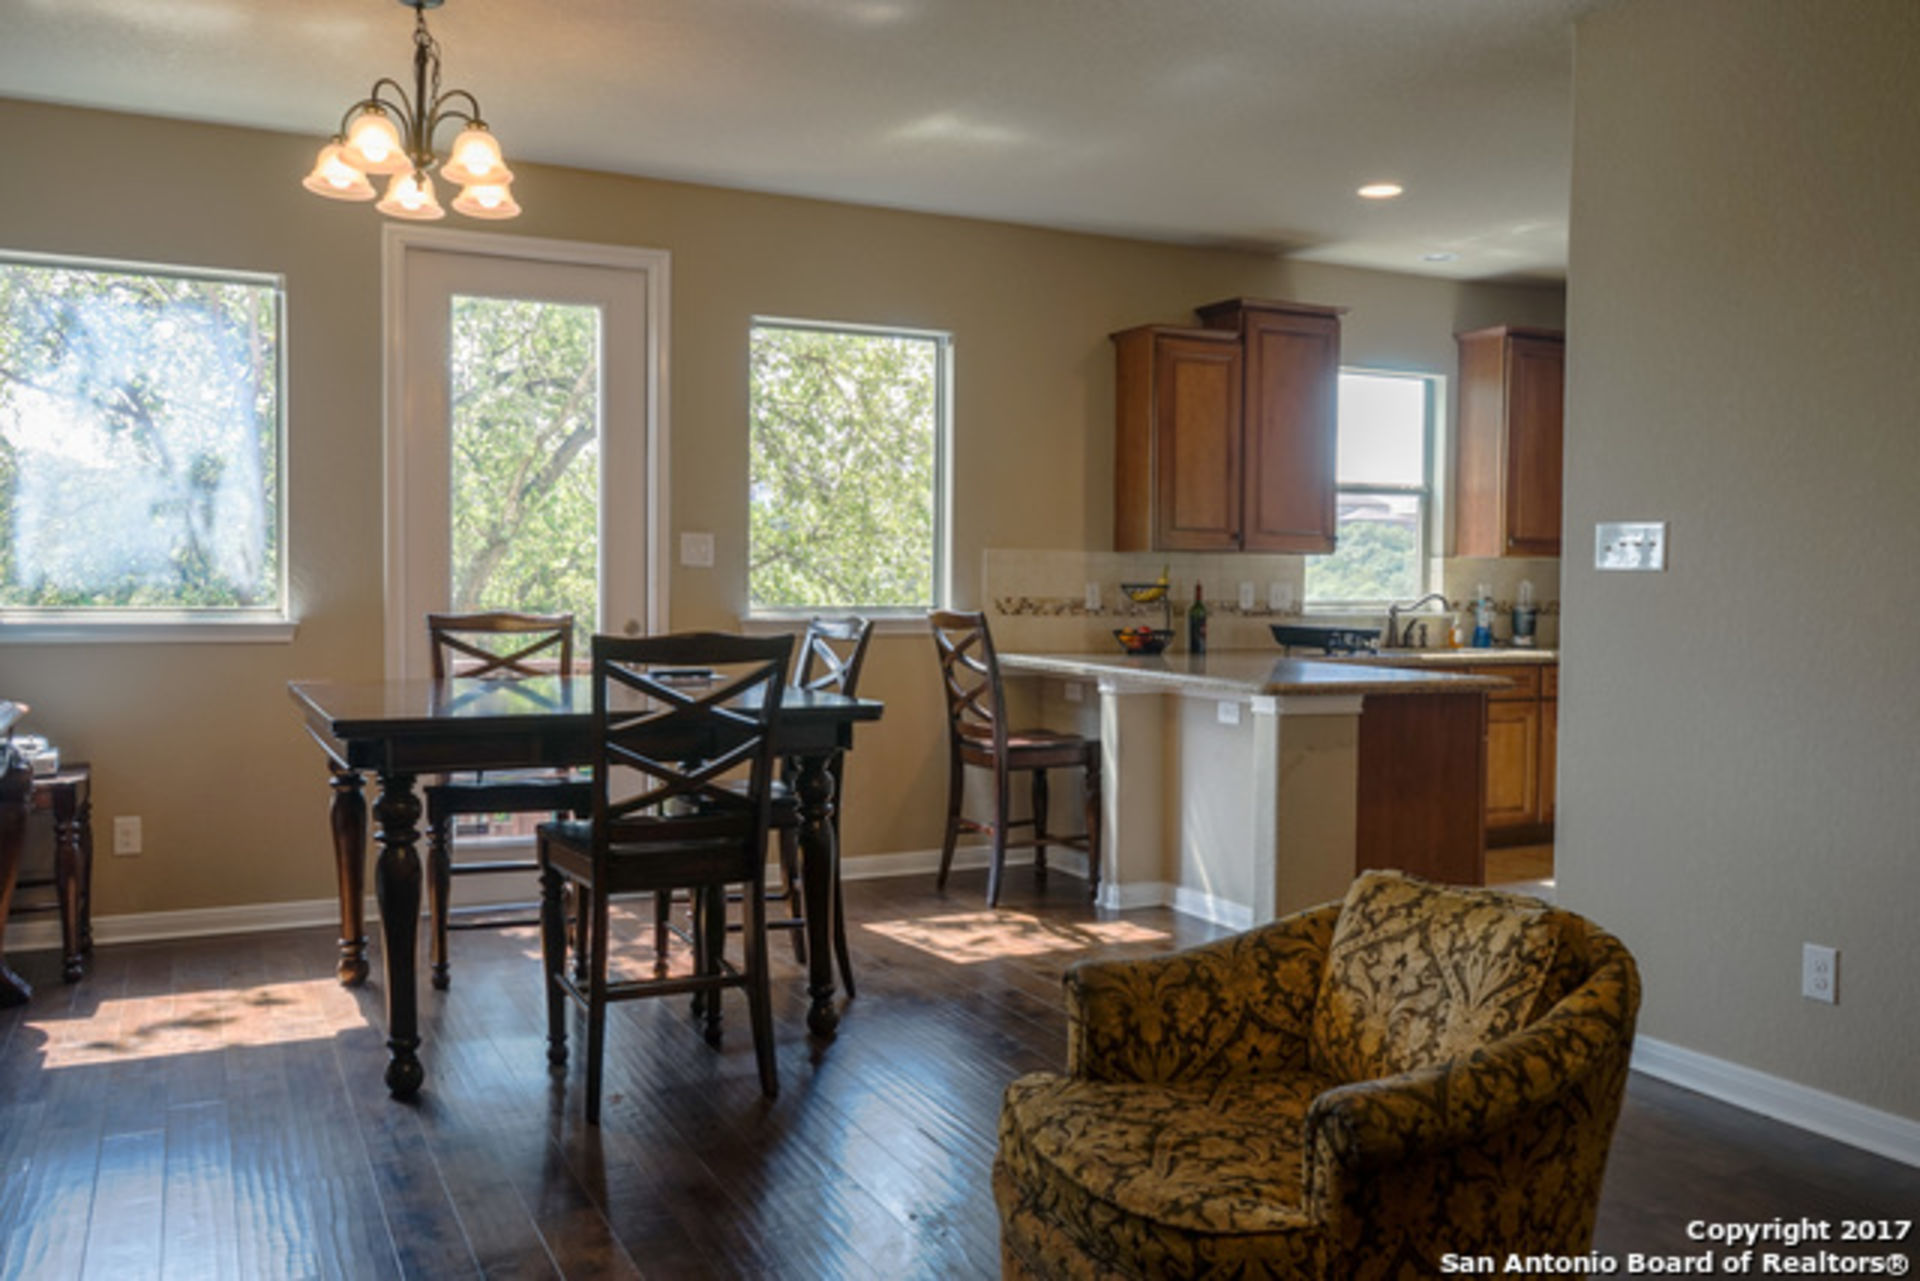 Staging a Home on a Budget